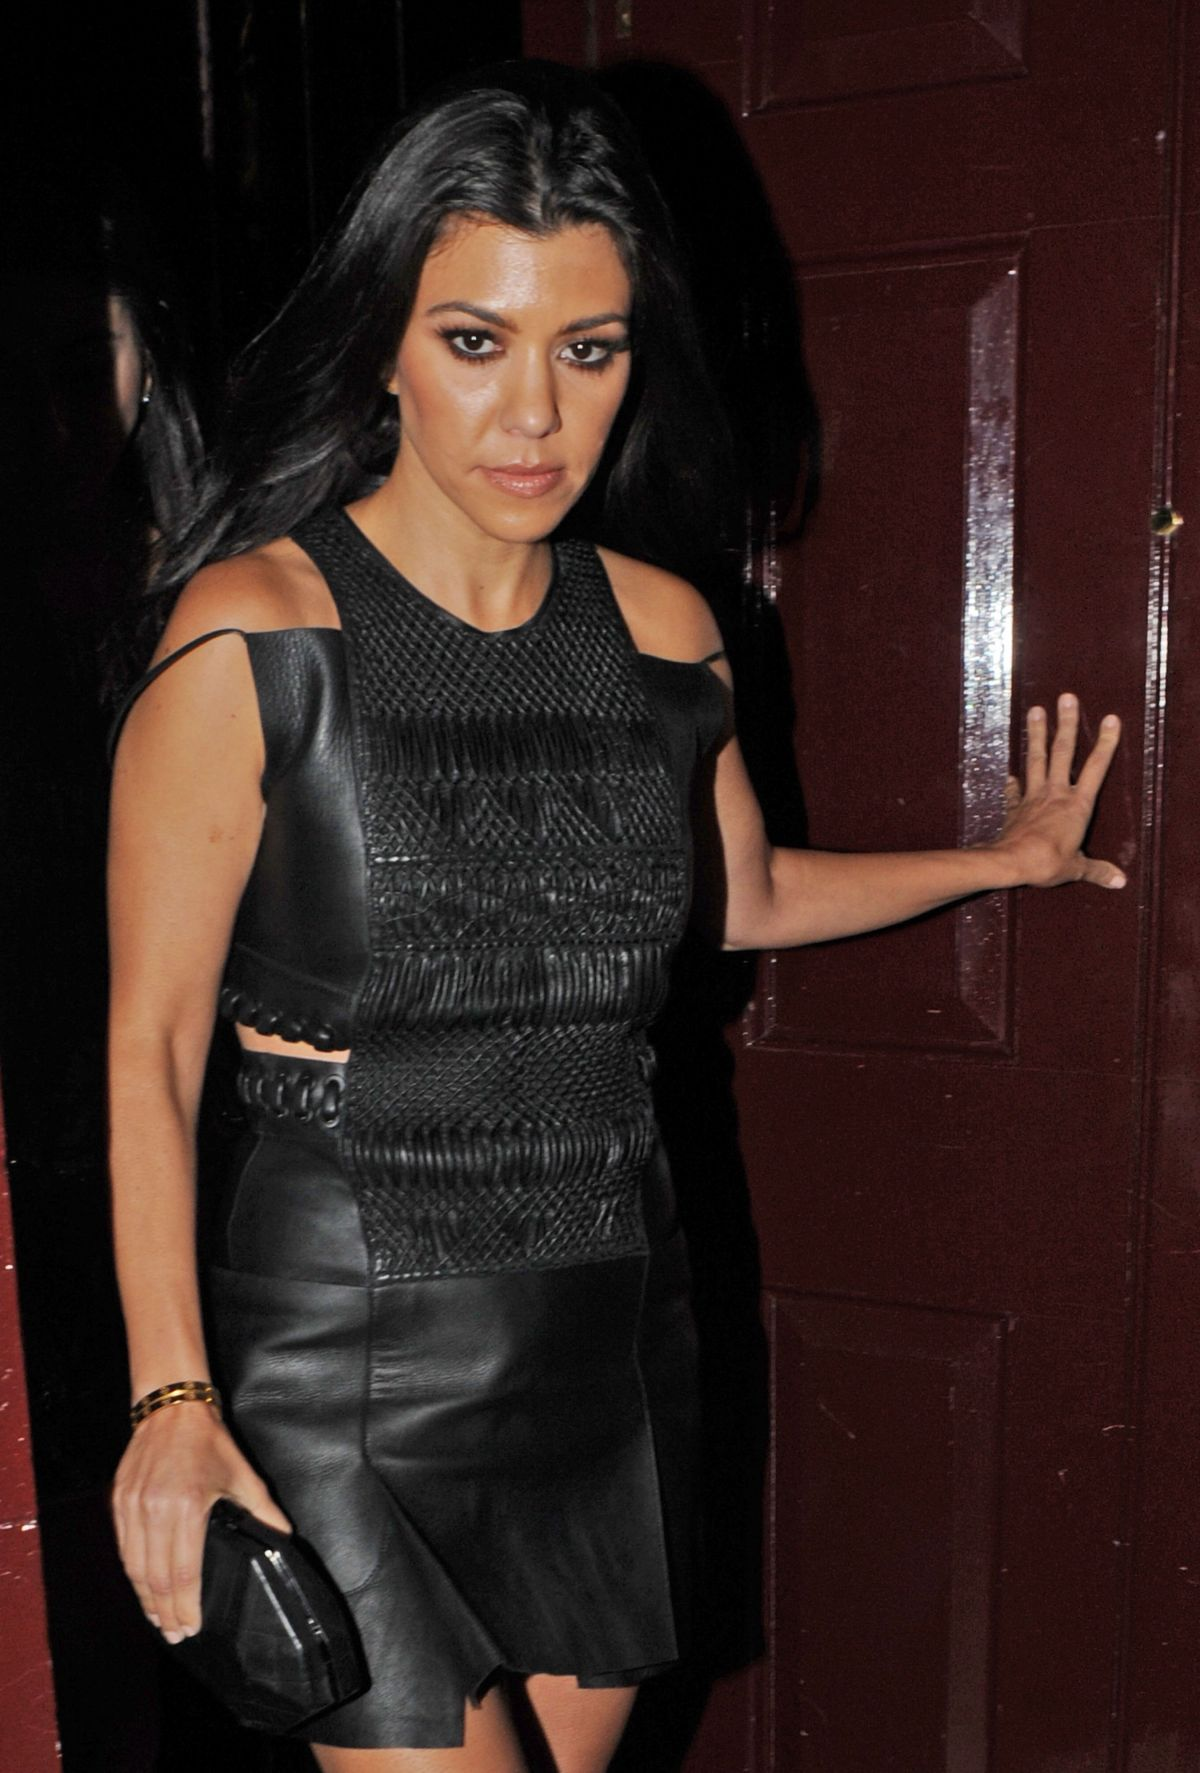 KOURTNEY KARDASHIAN Leaves Ours Restaurant in London 06/08/2016